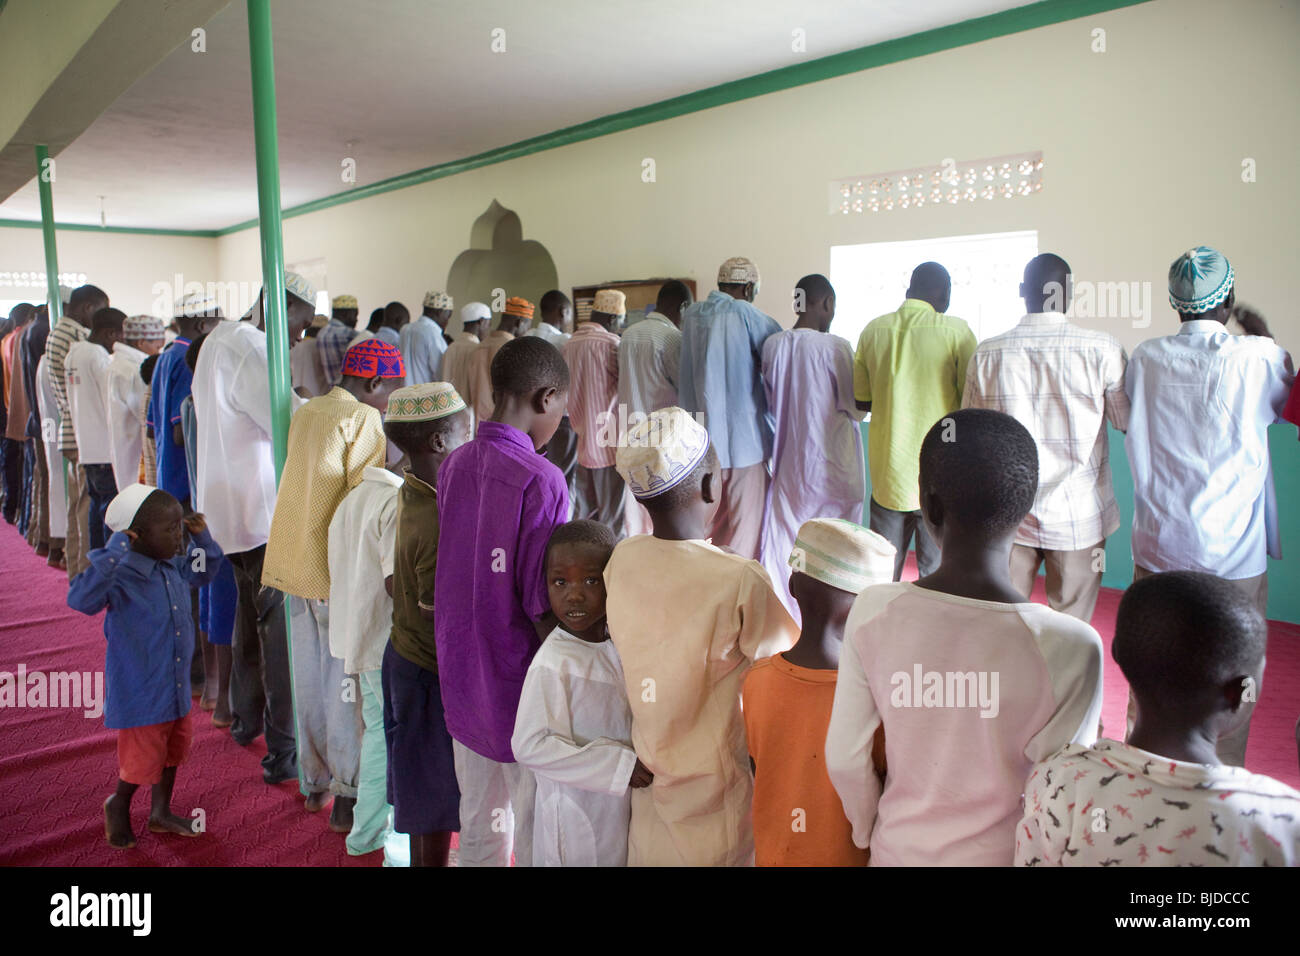 Friday prayers at a mosque in Amuria District, Teso Subregion, Uganda, East Africa - Stock Image